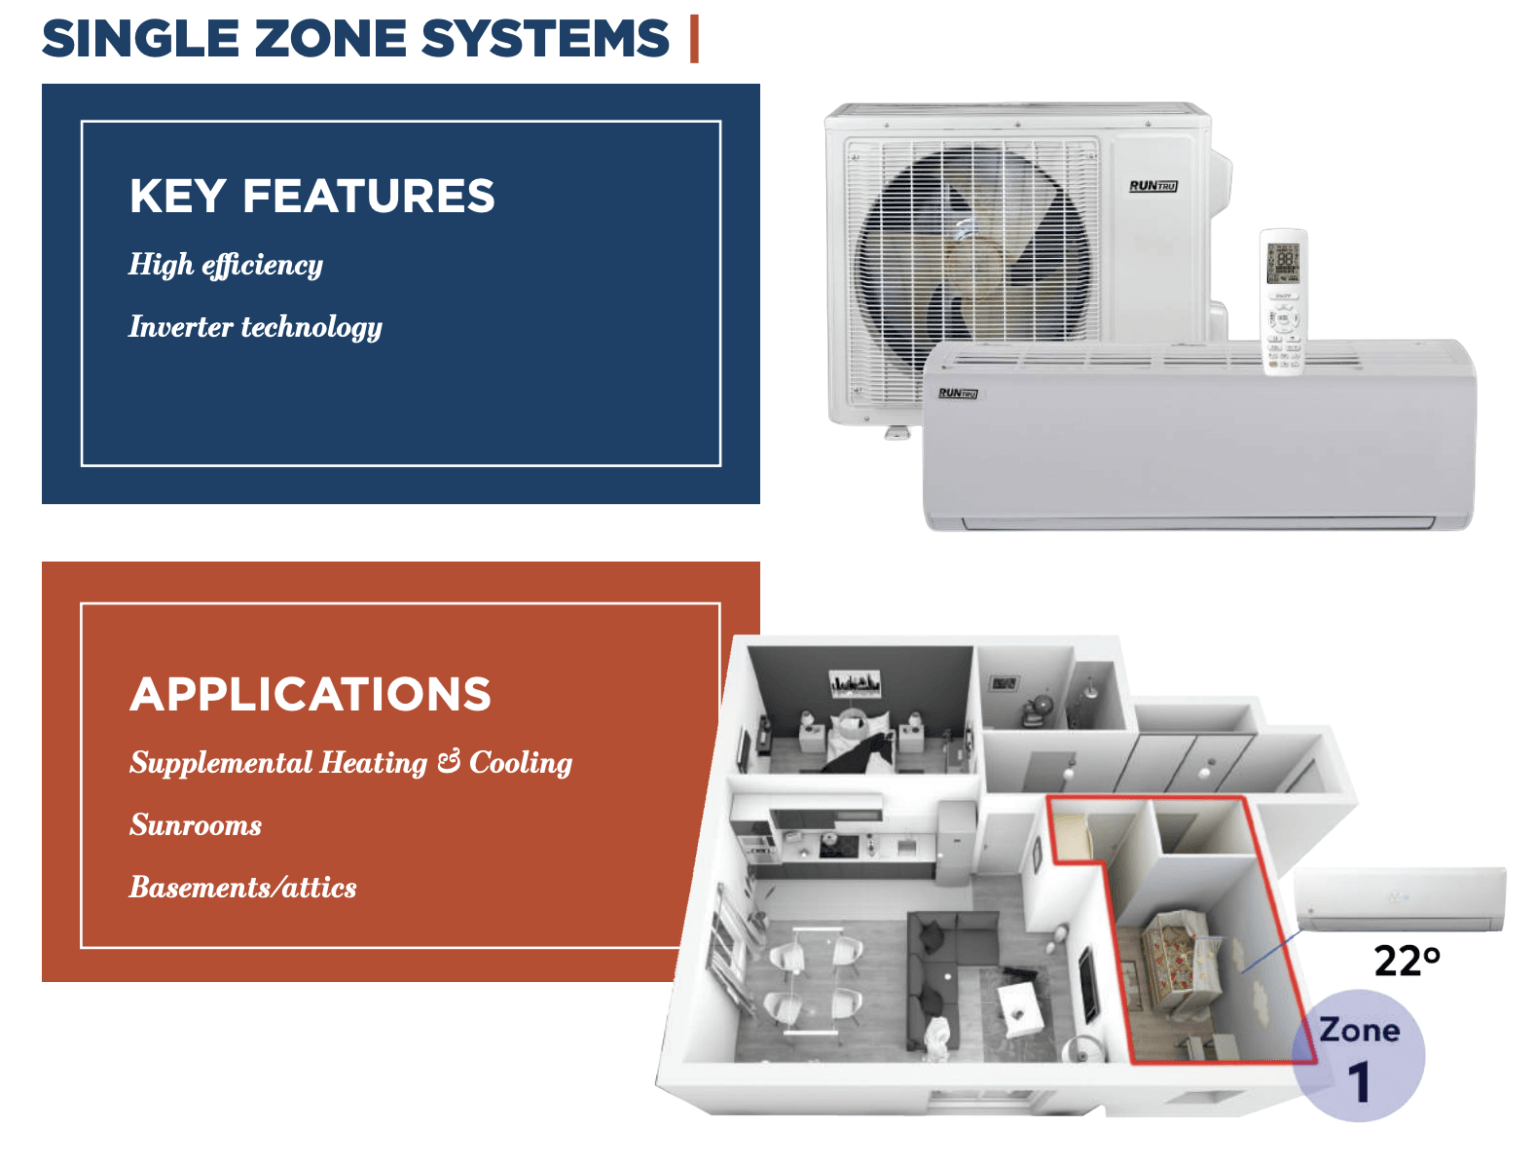 Crose Mechanical - Single Zone Systems Picture Update